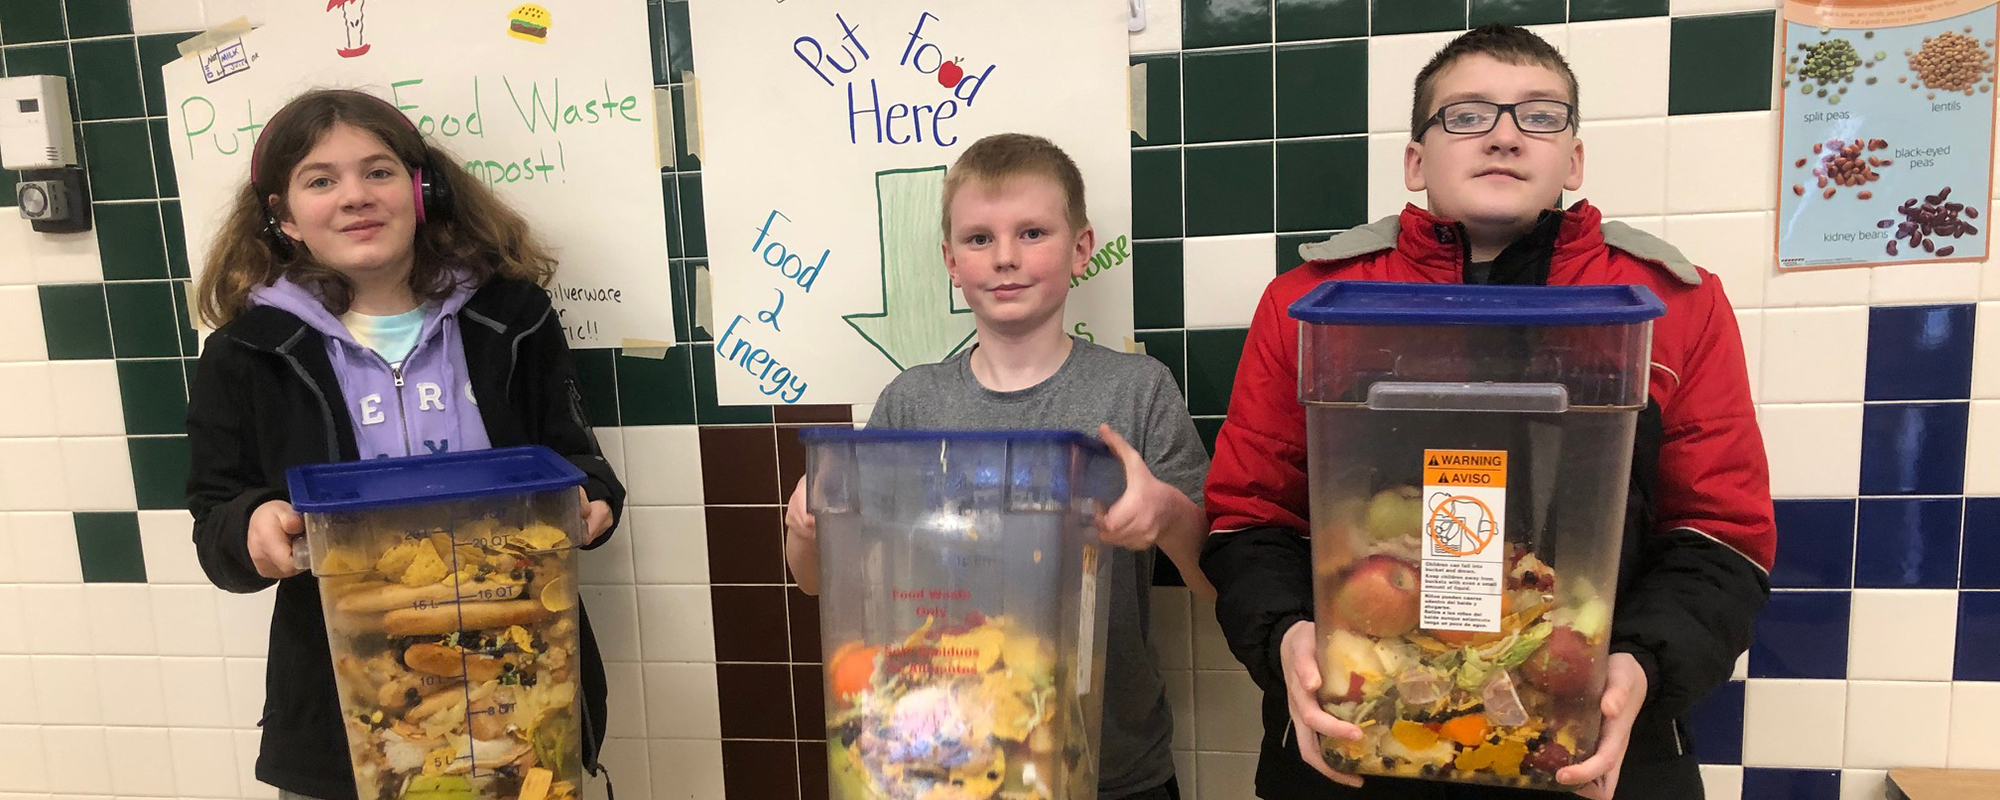 Foodwaste Collection